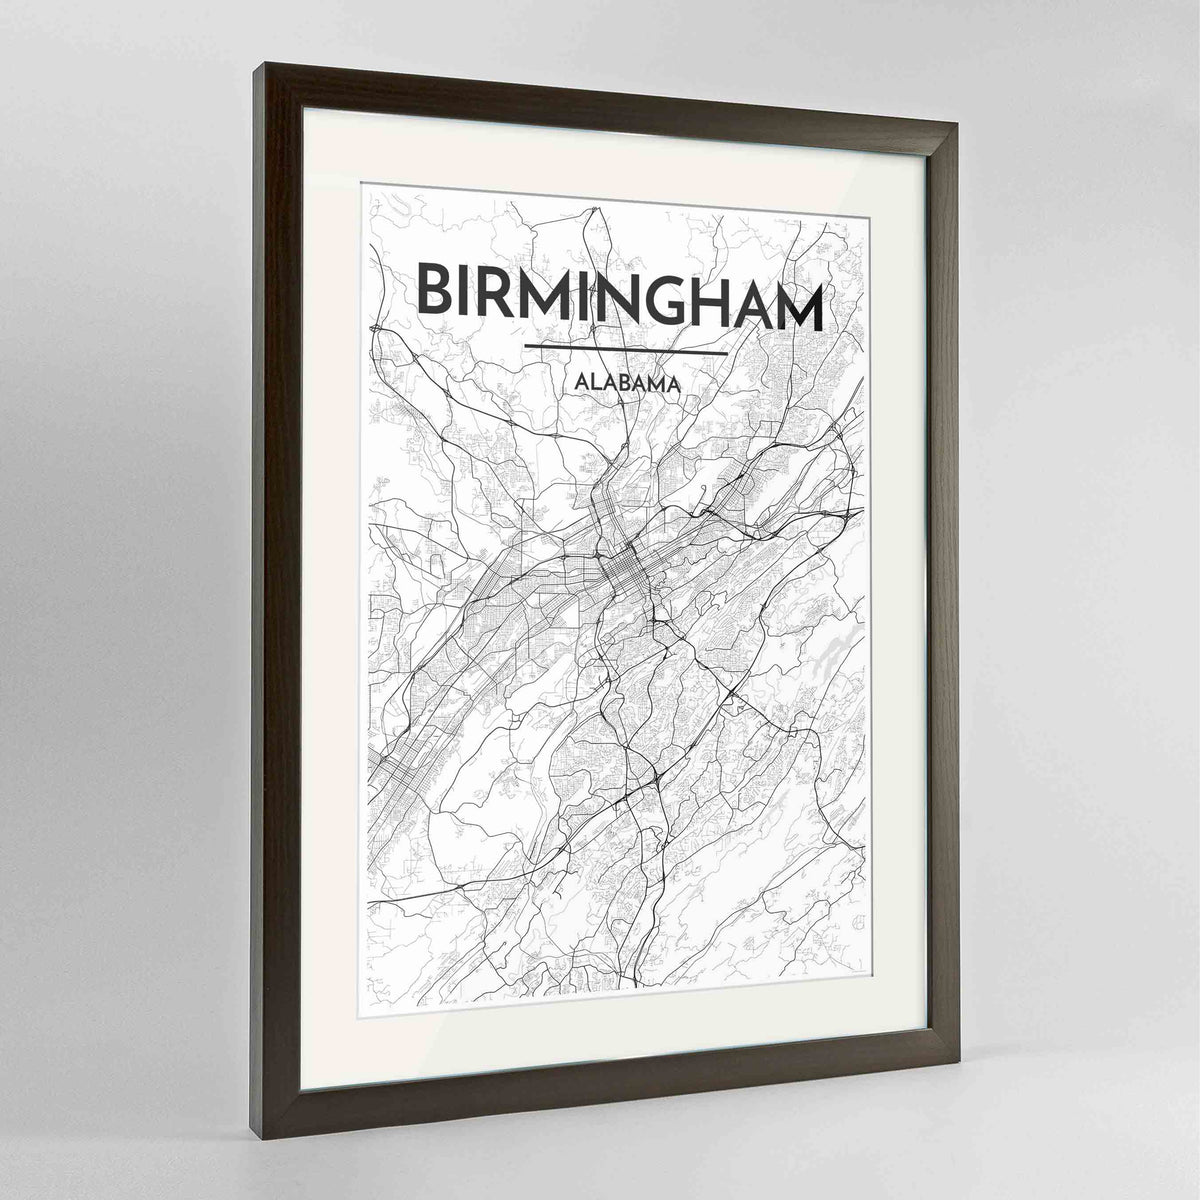 "Framed Birmingham - Alabama Map Art Print 24x36"" Contemporary Walnut frame Point Two Design Group"